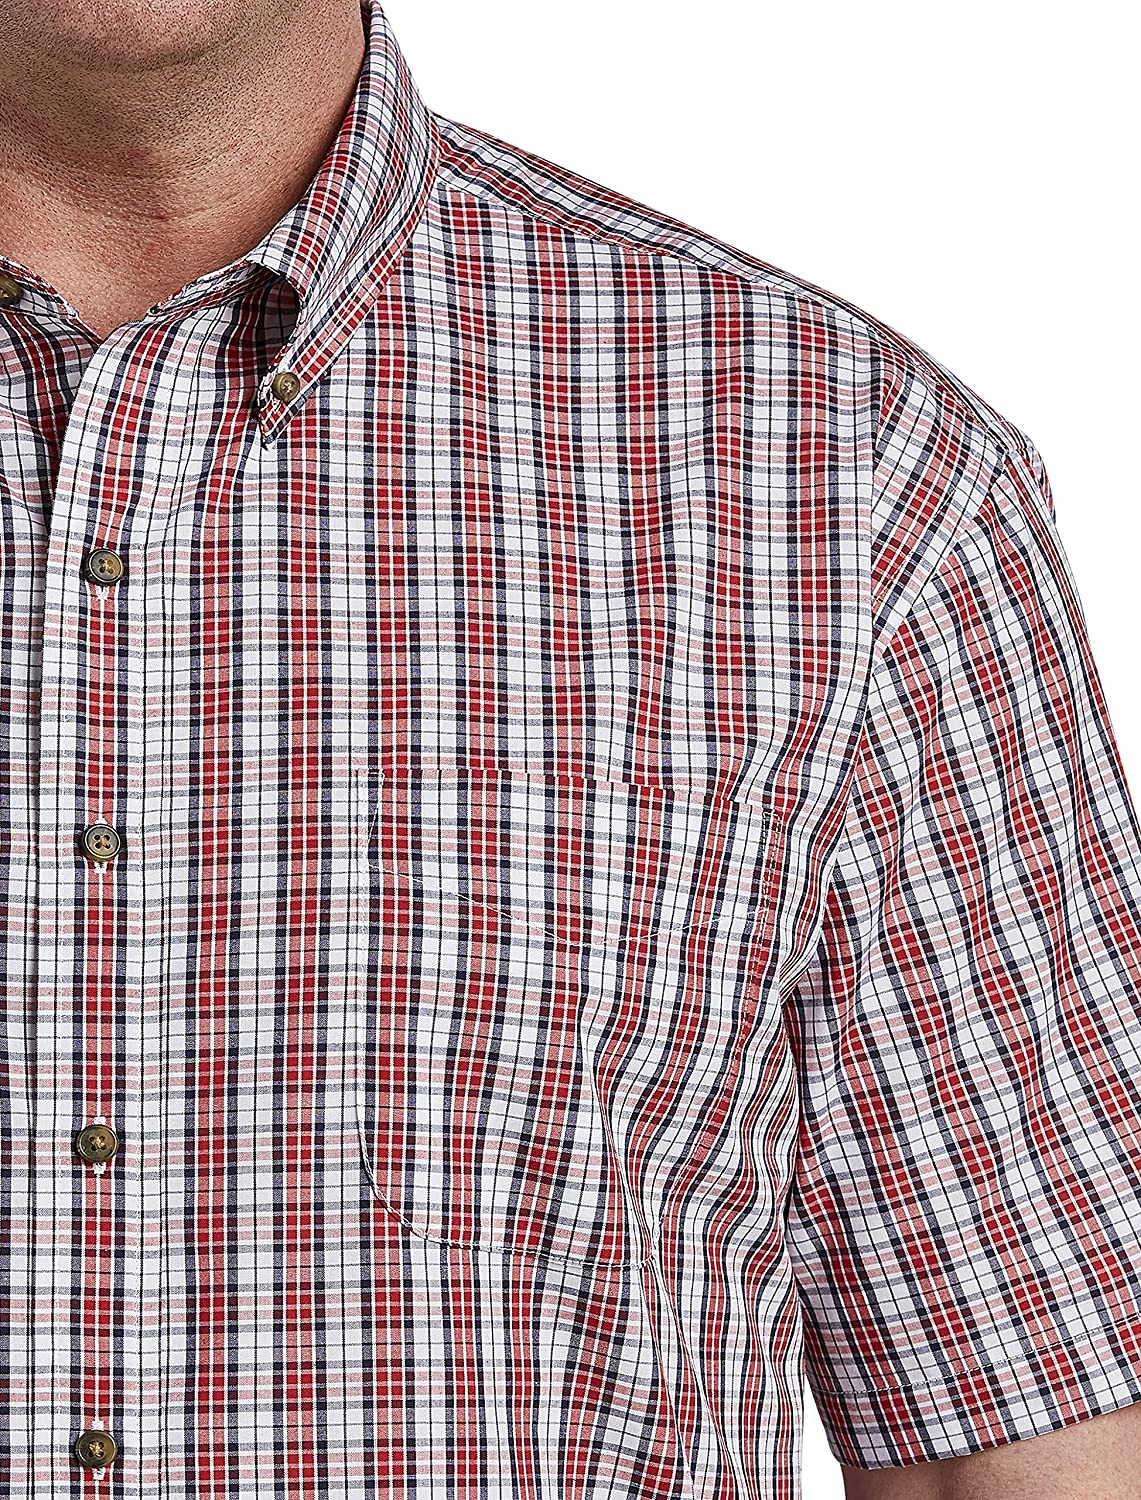 Harbor Bay by DXL Big and Tall Easy-Care Small Plaid Sport Shirt, Navy/Red, 1XL